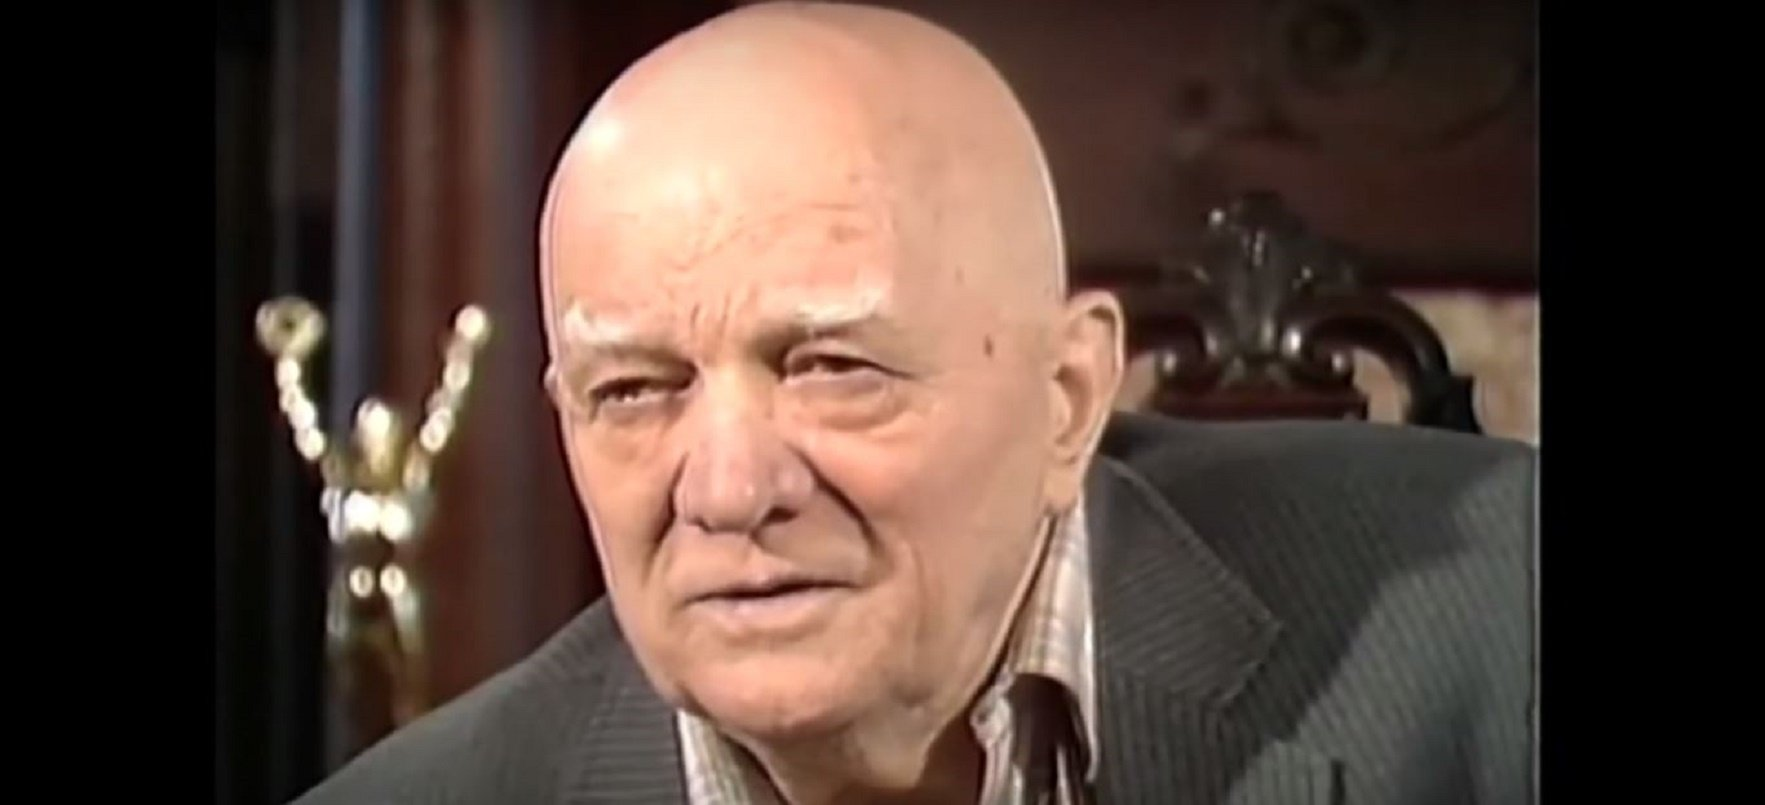 What Cus D'Amato Said That Applies To What The World Is Experiencing